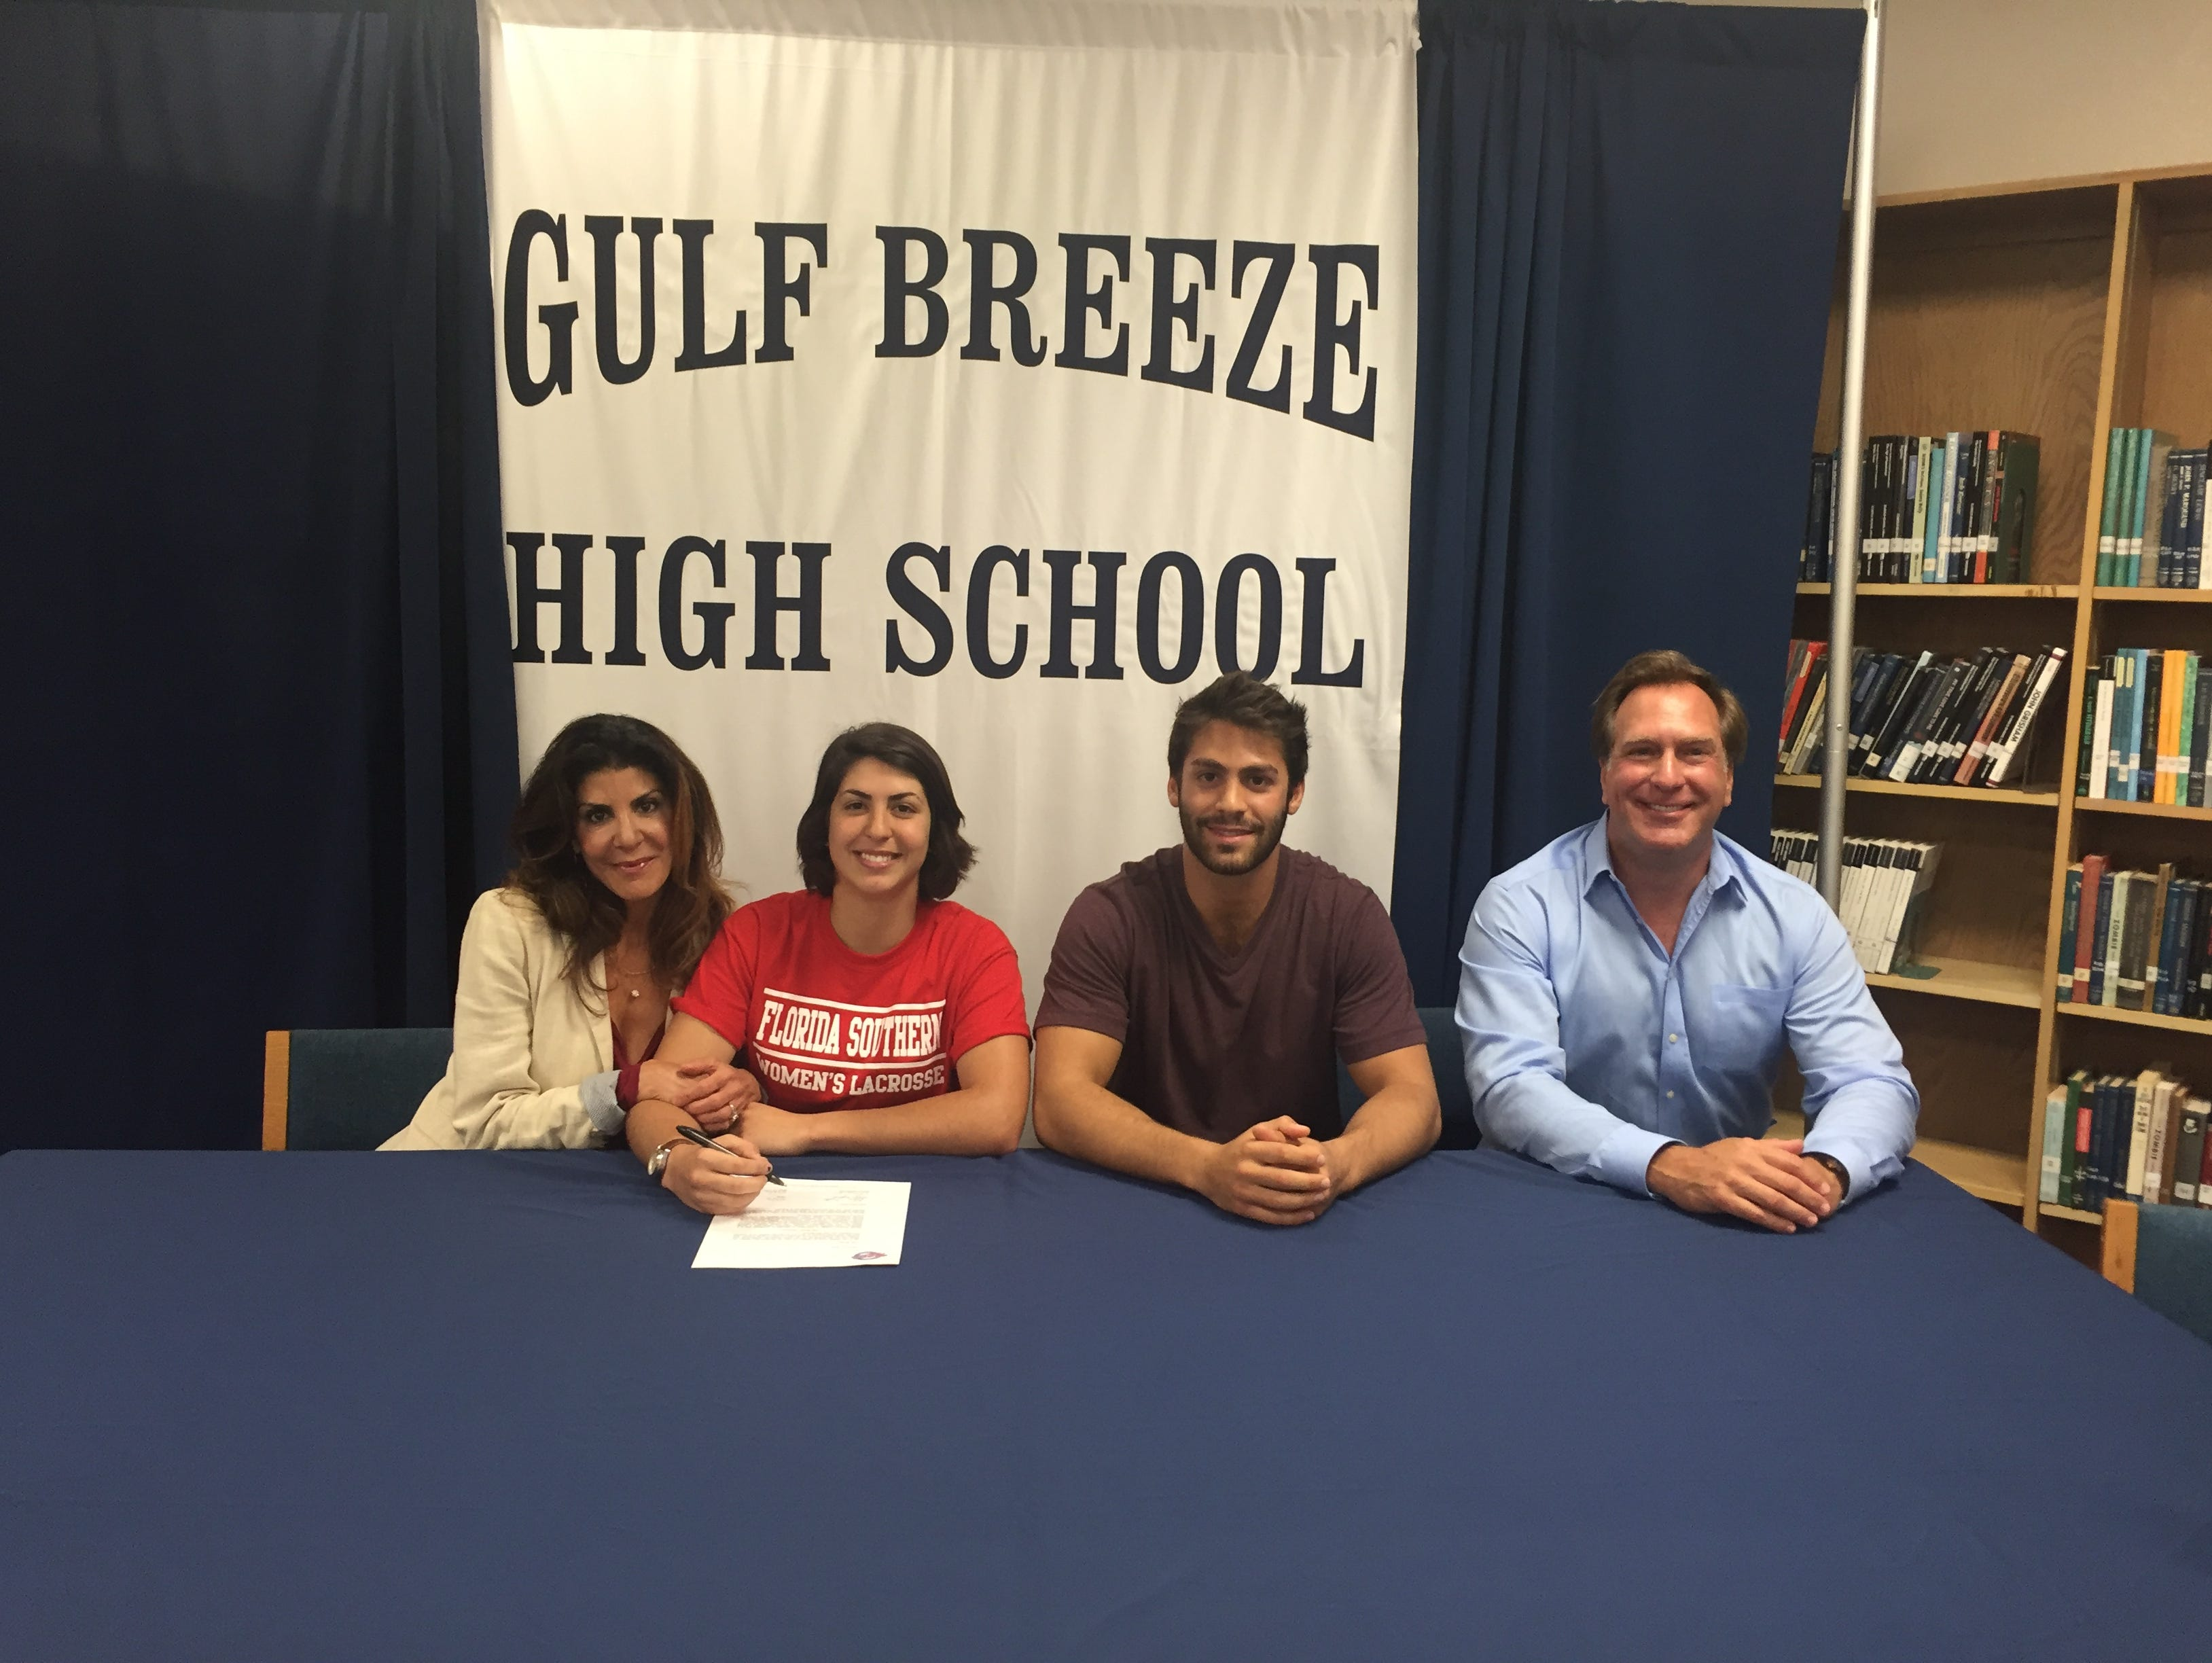 Gulf Breeze High girls lacrosse goalie Alanna Zambetti (center) signs to play at Florida Southern, joined by her mother, Donna, brother Andrew and her father Edward at Thursday's signing event.